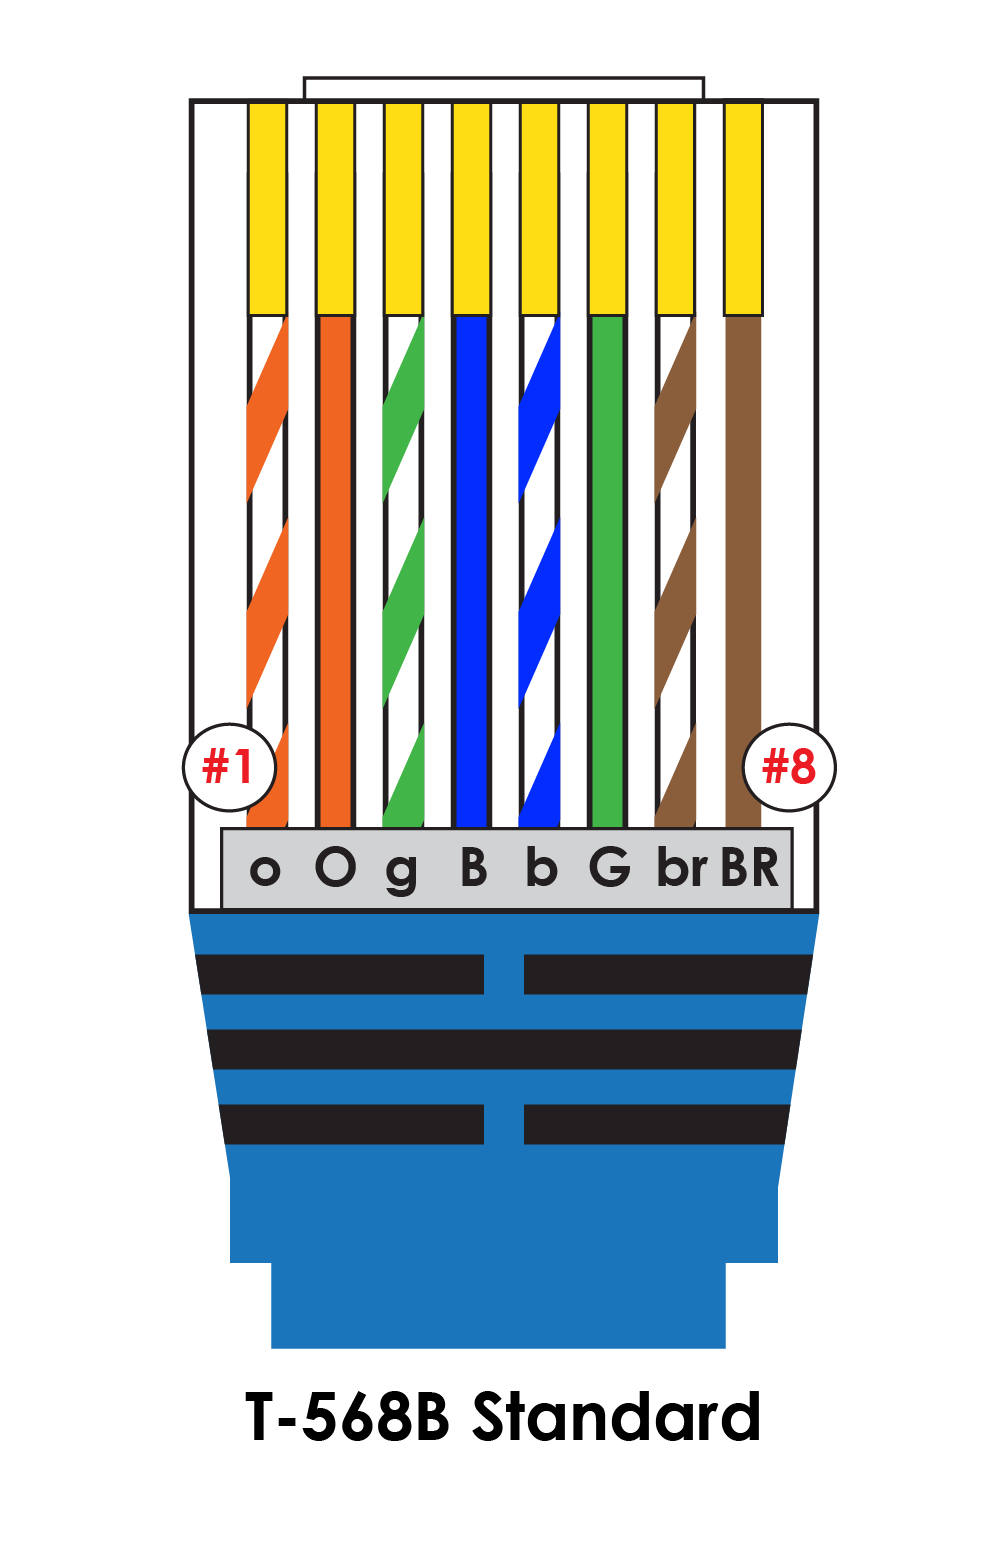 With Cat 5 Rj45 Wiring Another Blog About Diagram Baja Motorsports Ether Crossover Cable Ethernet